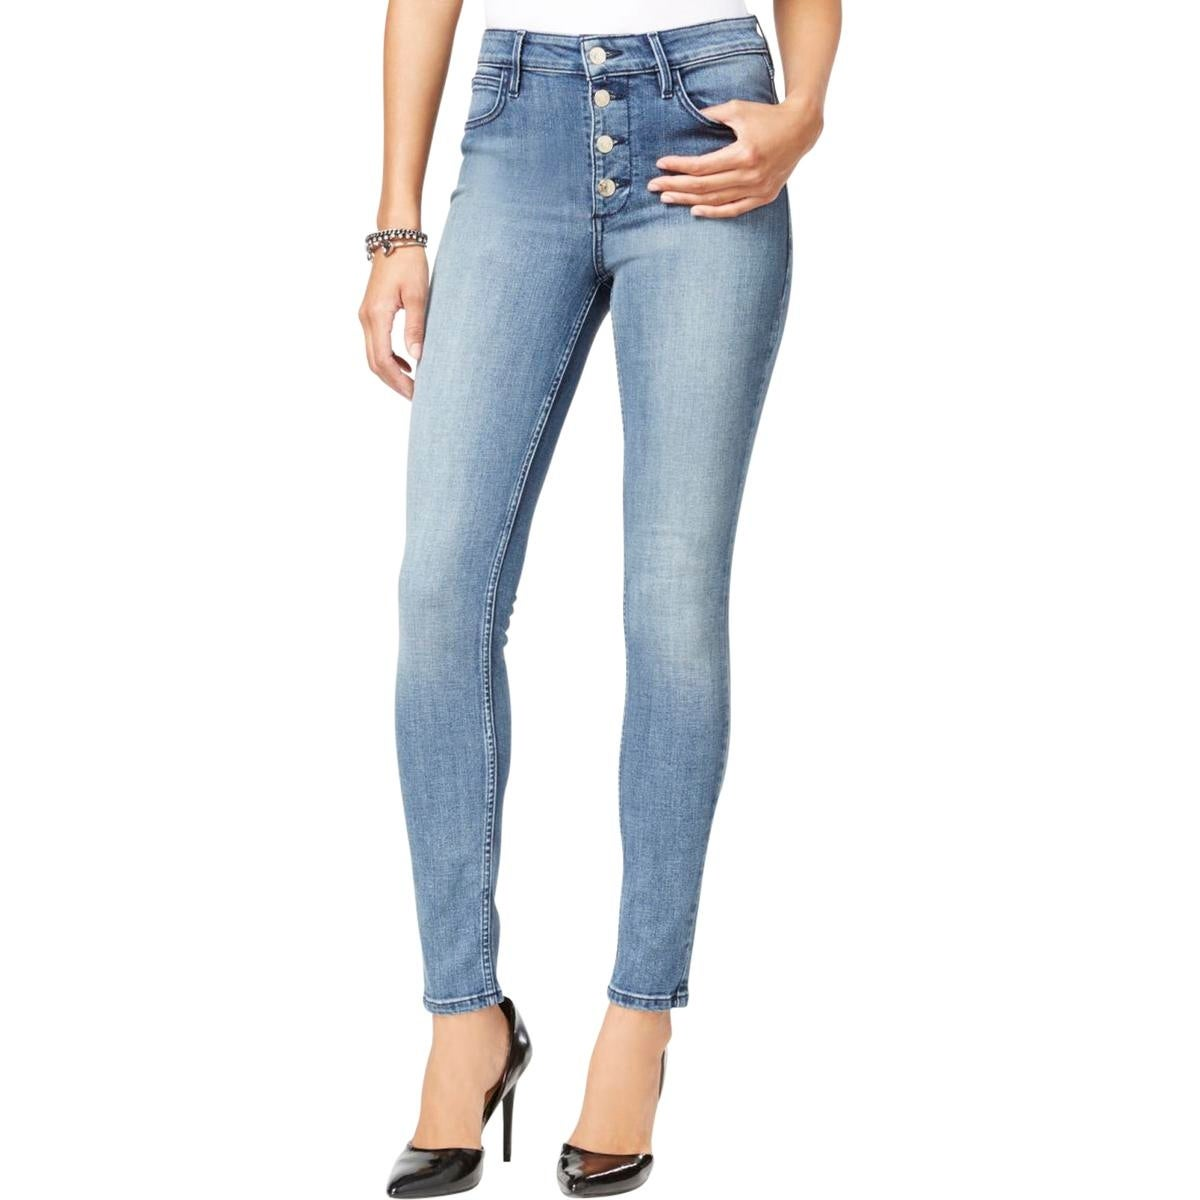 430496d54 Guess Womens Skinny Jeans Slim 1981 Button Front